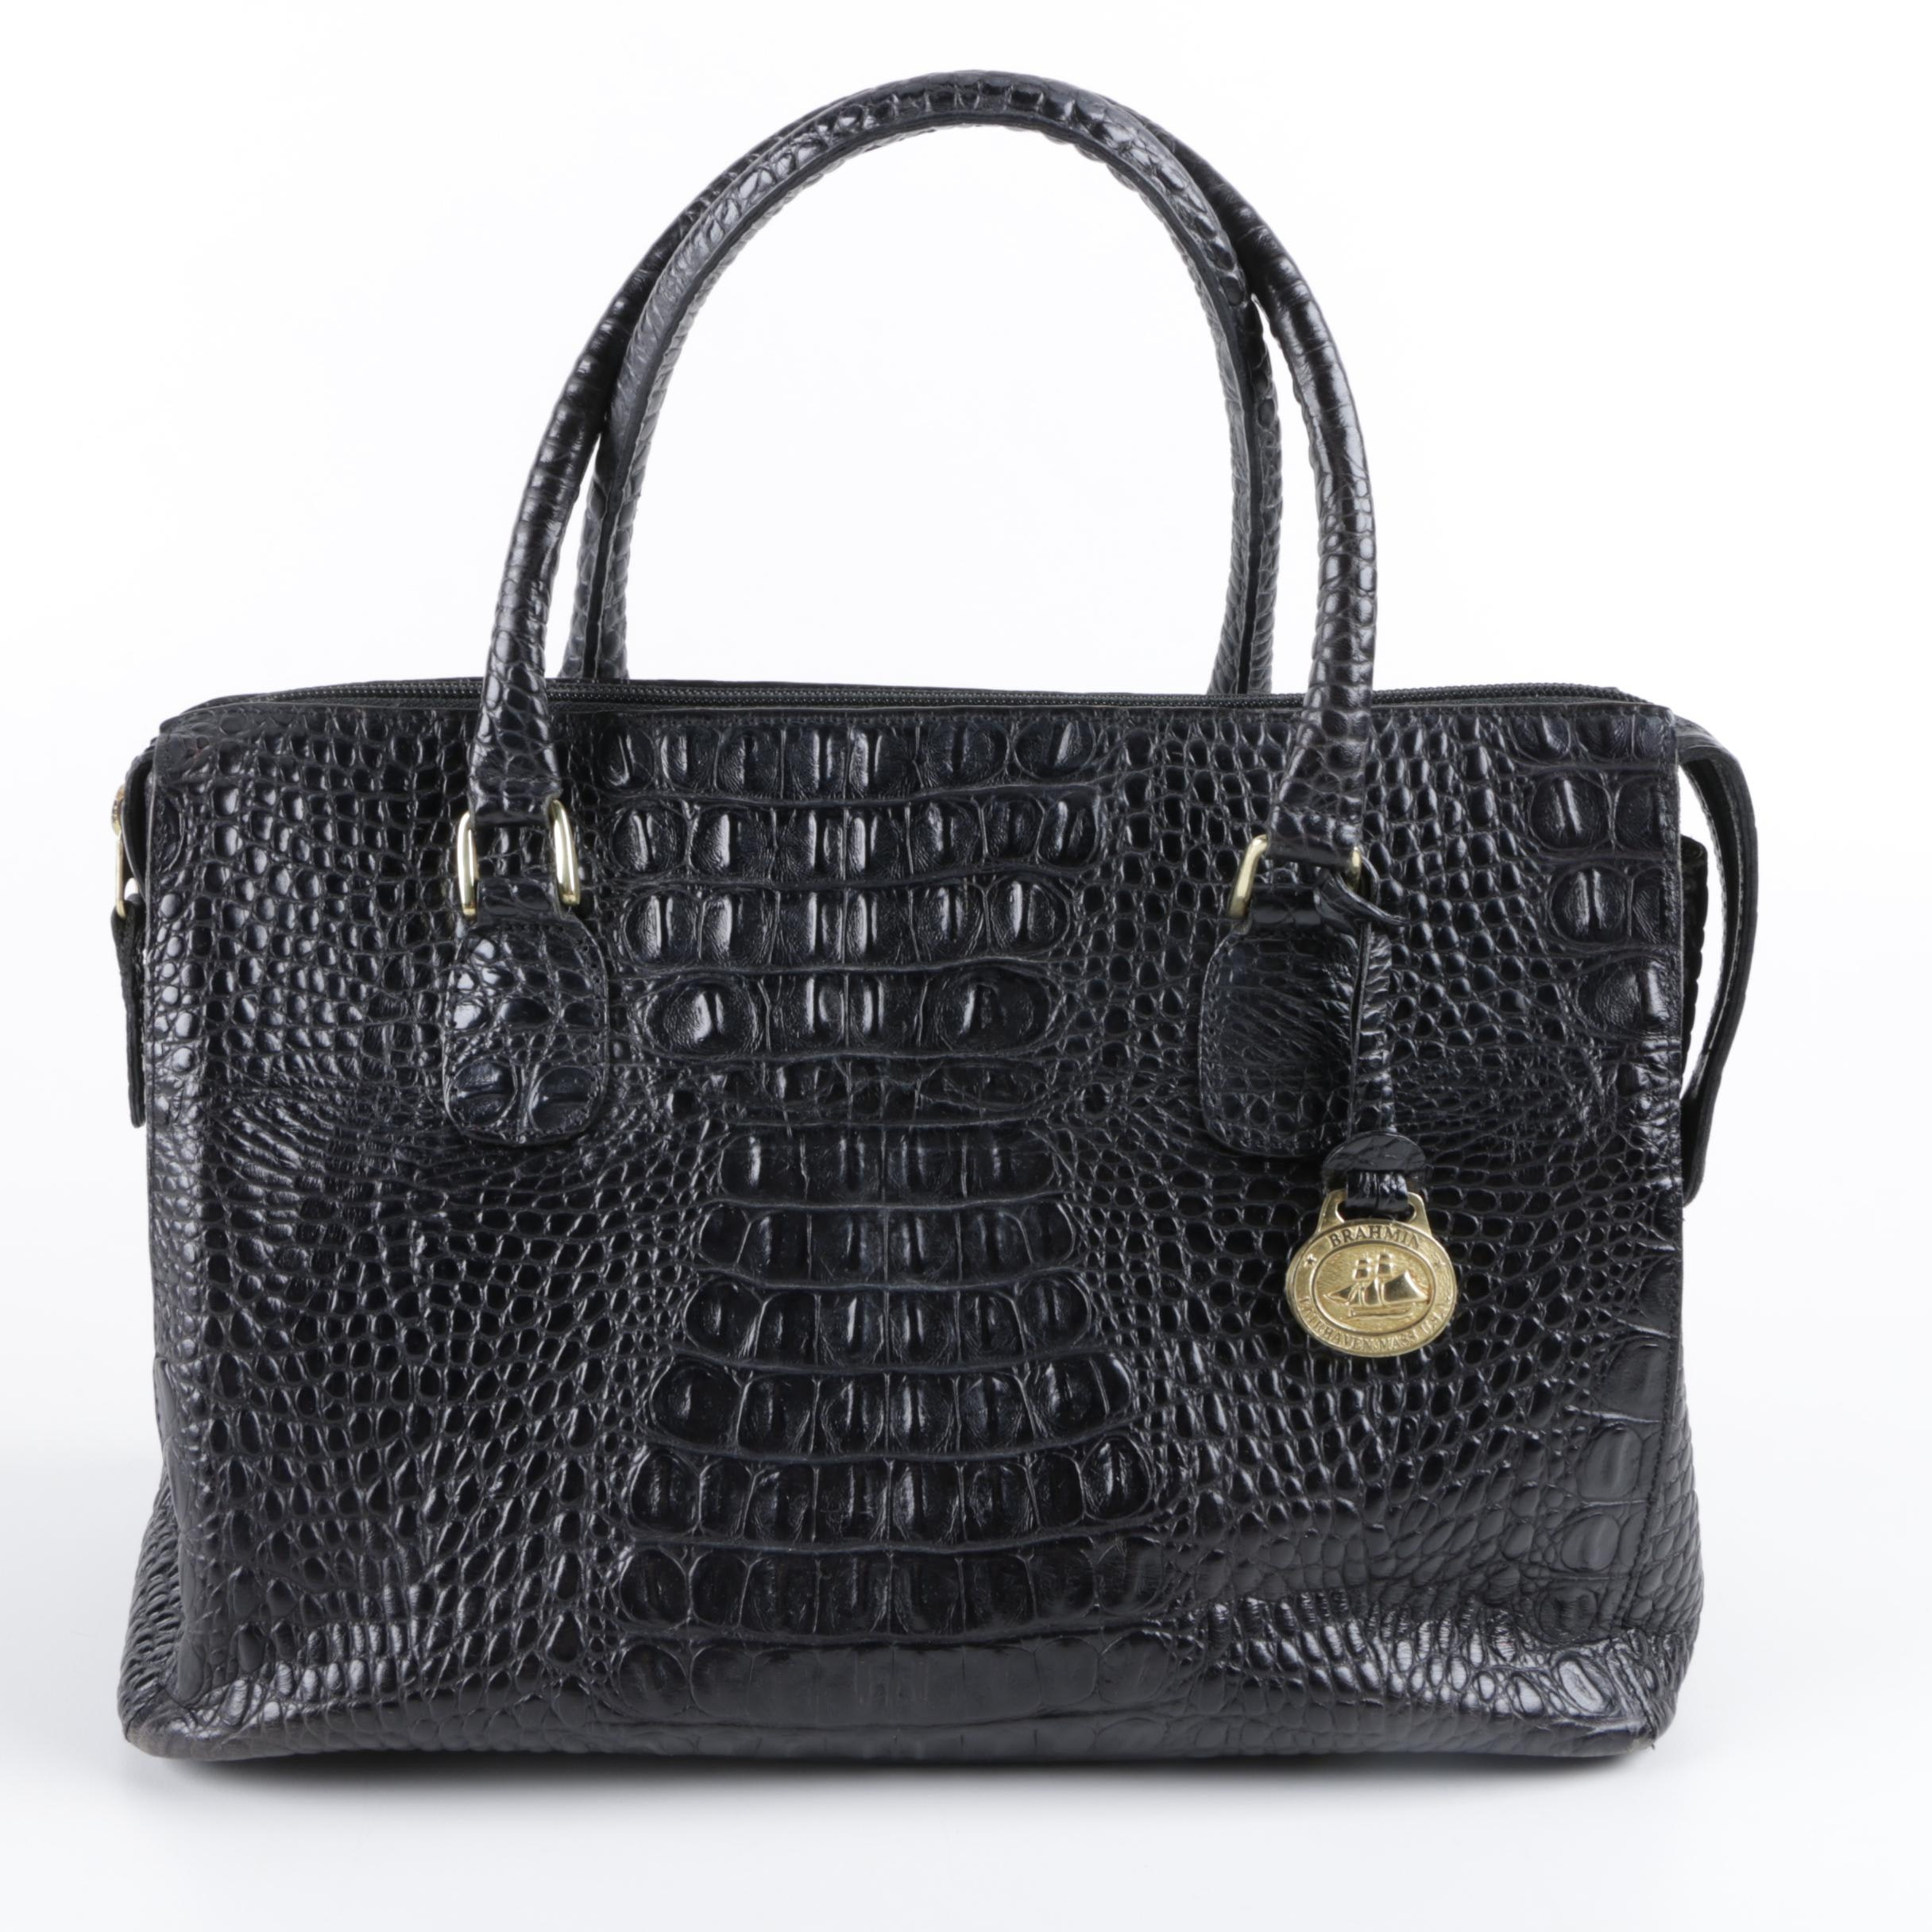 Brahmin Crocodile Embossed Black Leather Handbag